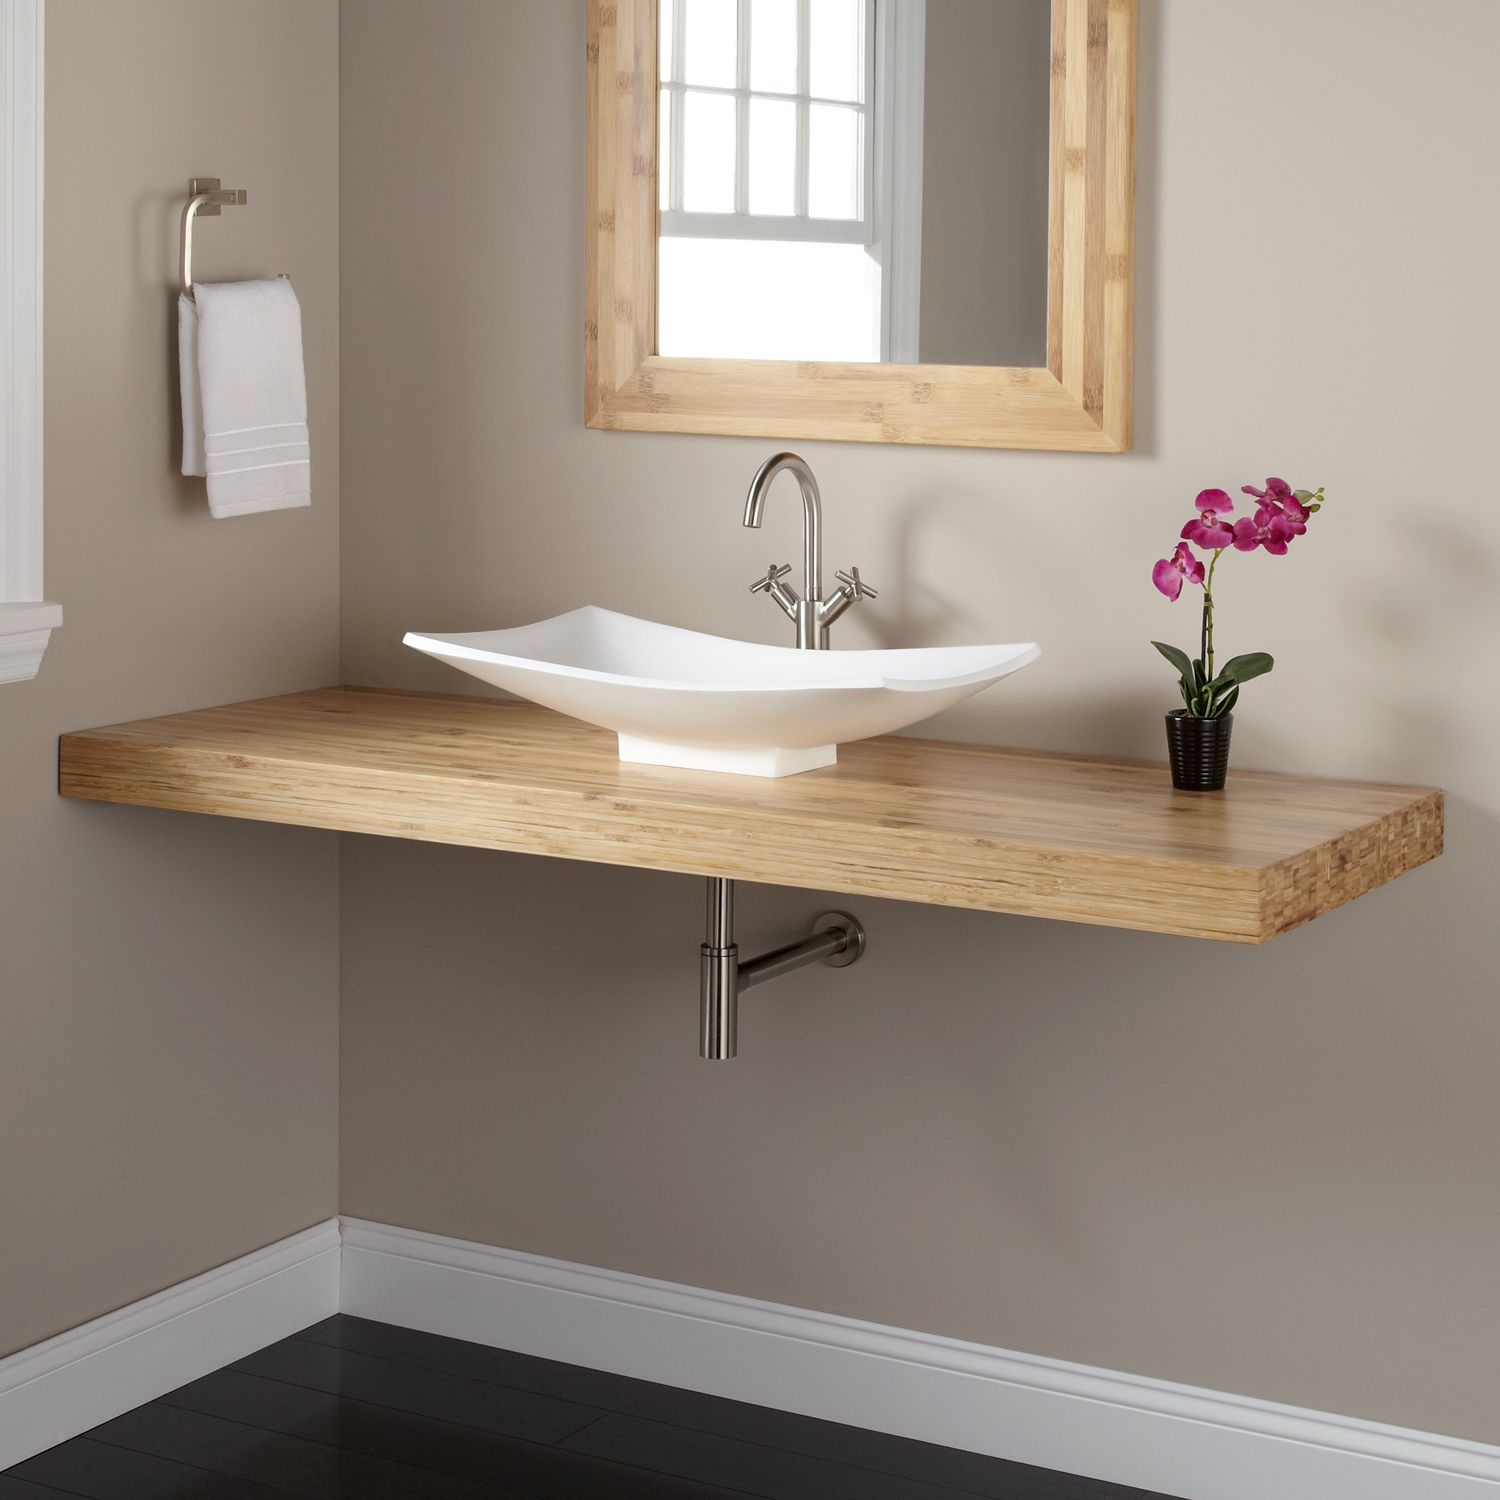 Bamboo Sink And Vanity Vanities 61 Wall Mount Top For Vessel